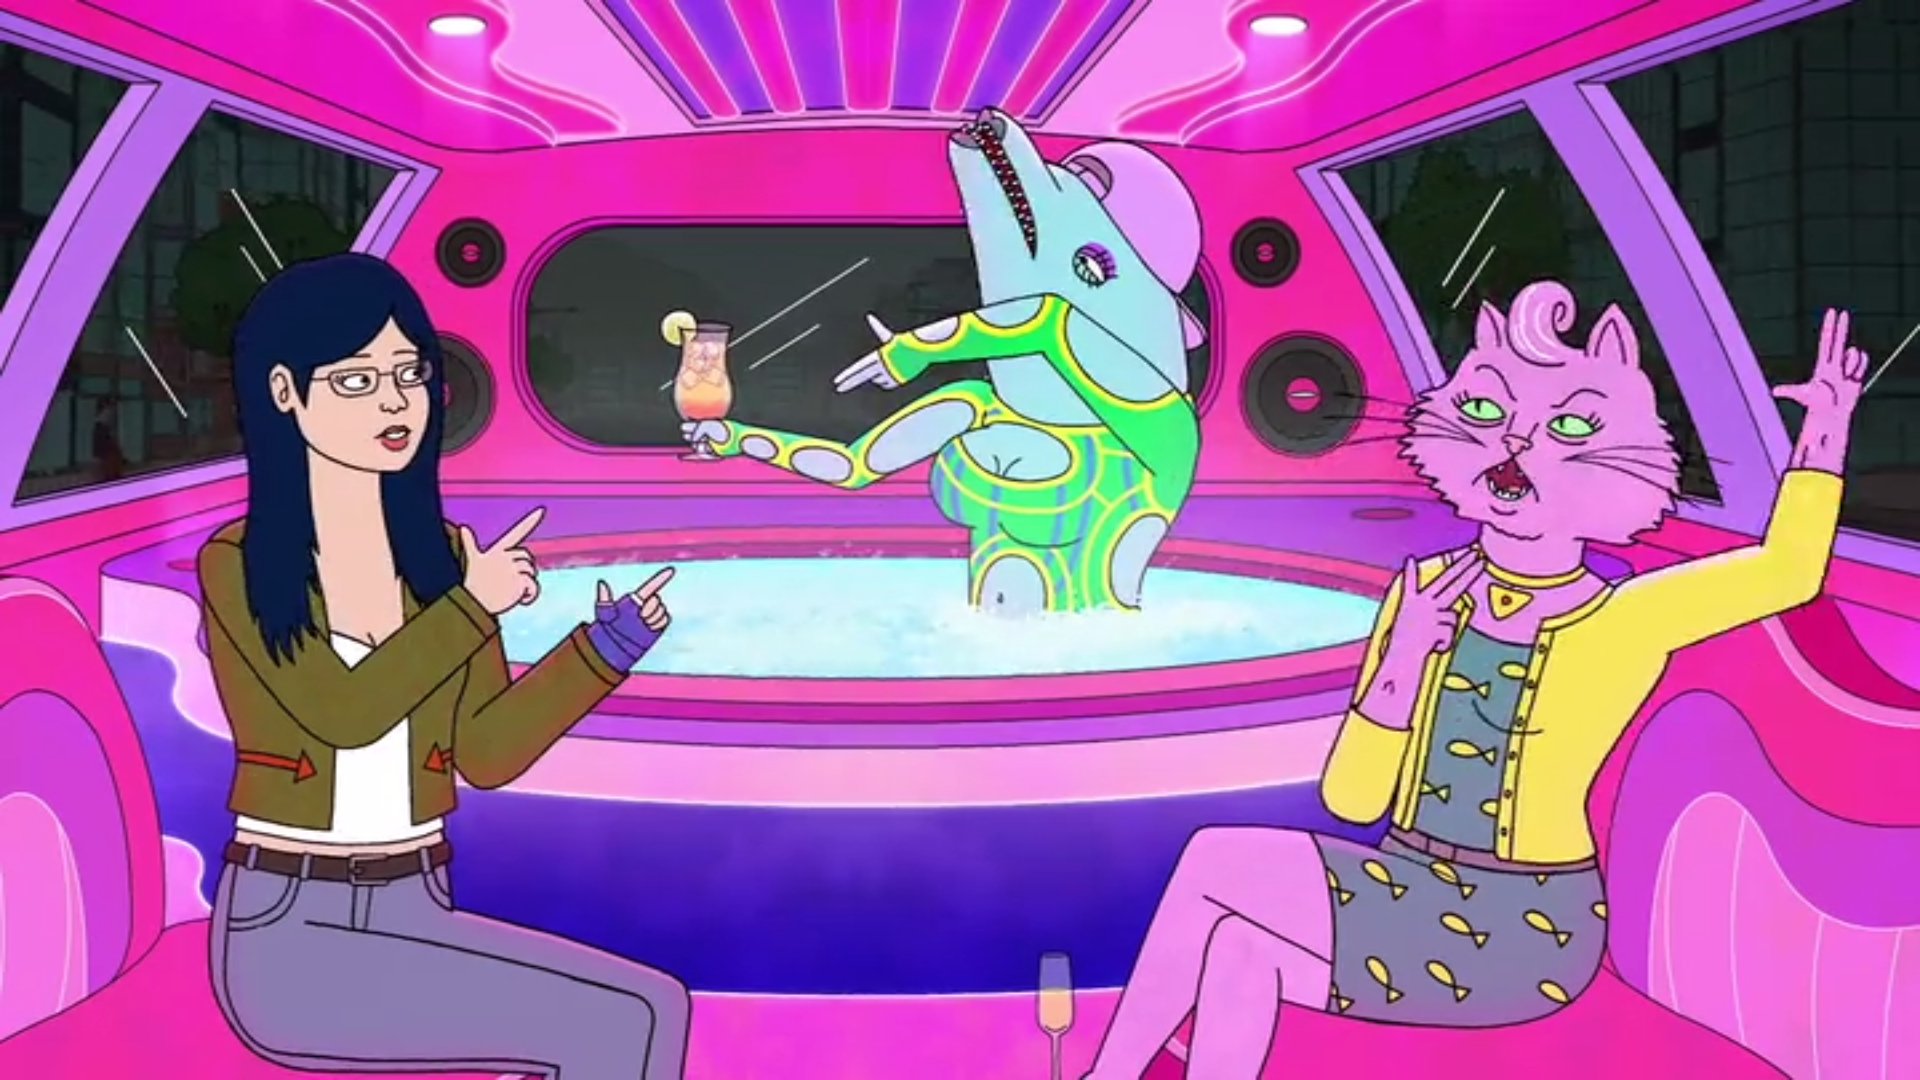 Sextina Aquafina in a limo hot tub with Diane and Princess Carolyn in the limo.